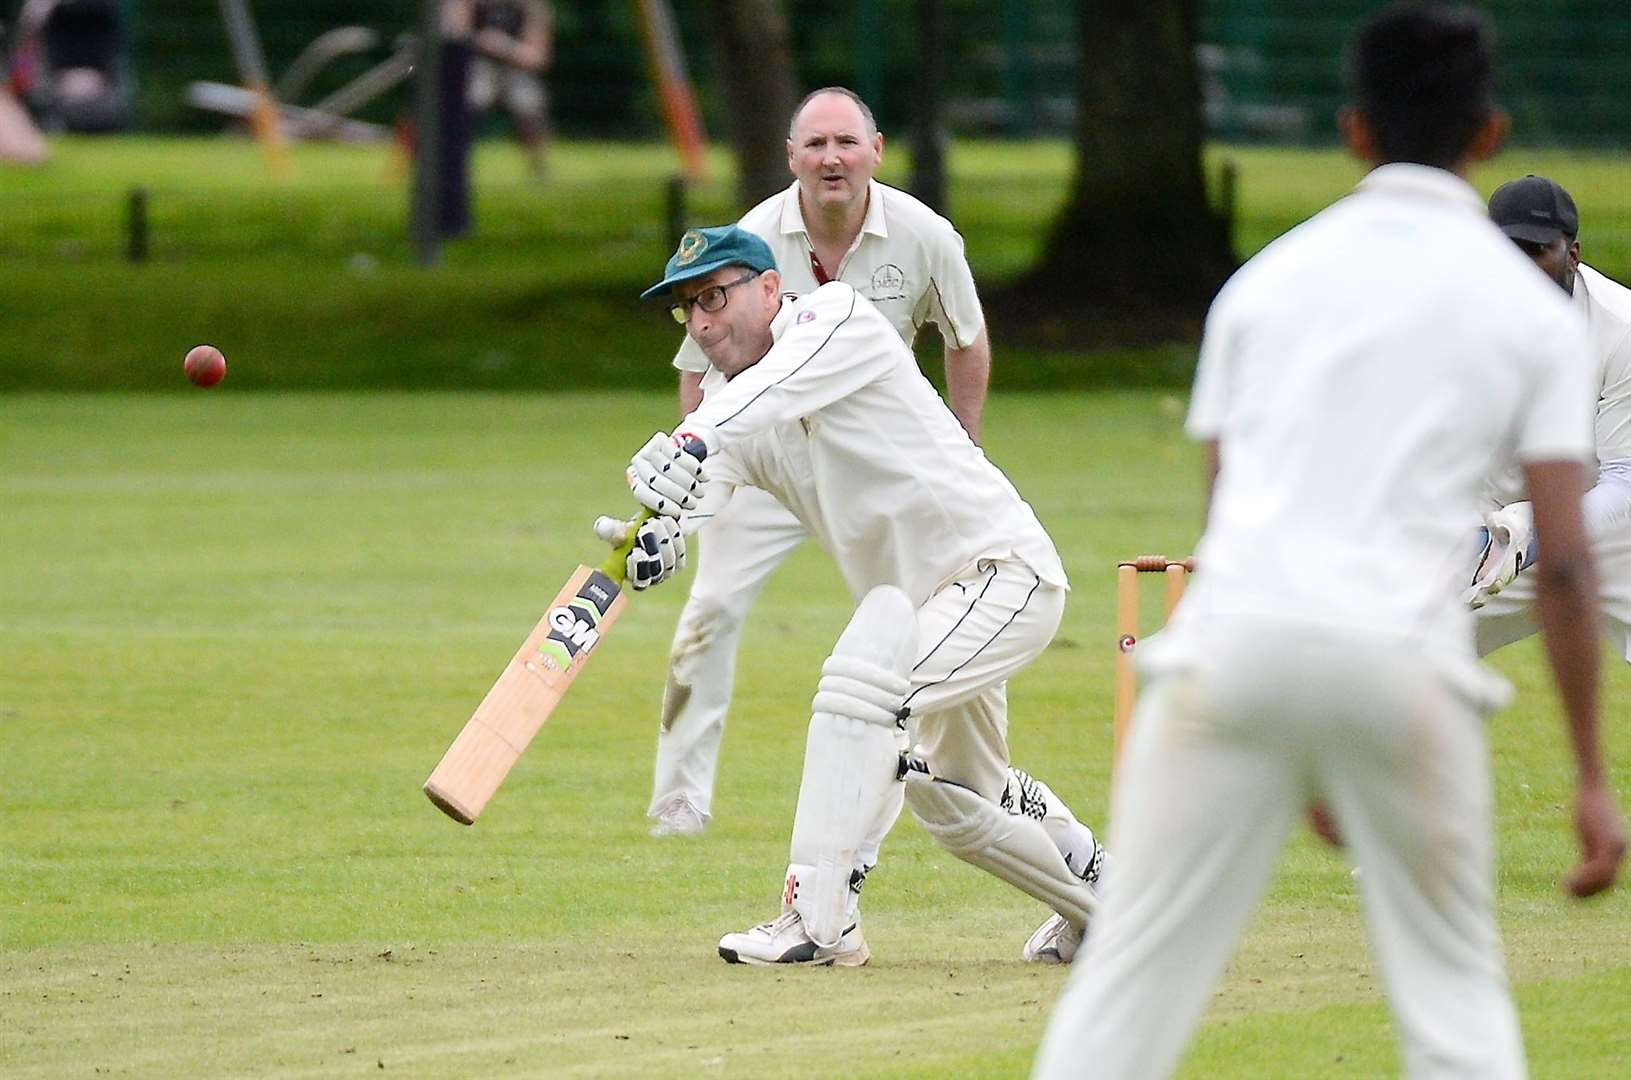 Cricket at Fraser Park..Highland v Ross County..Renato Belli in action for County..Picture: Gary Anthony. Image No.044421.